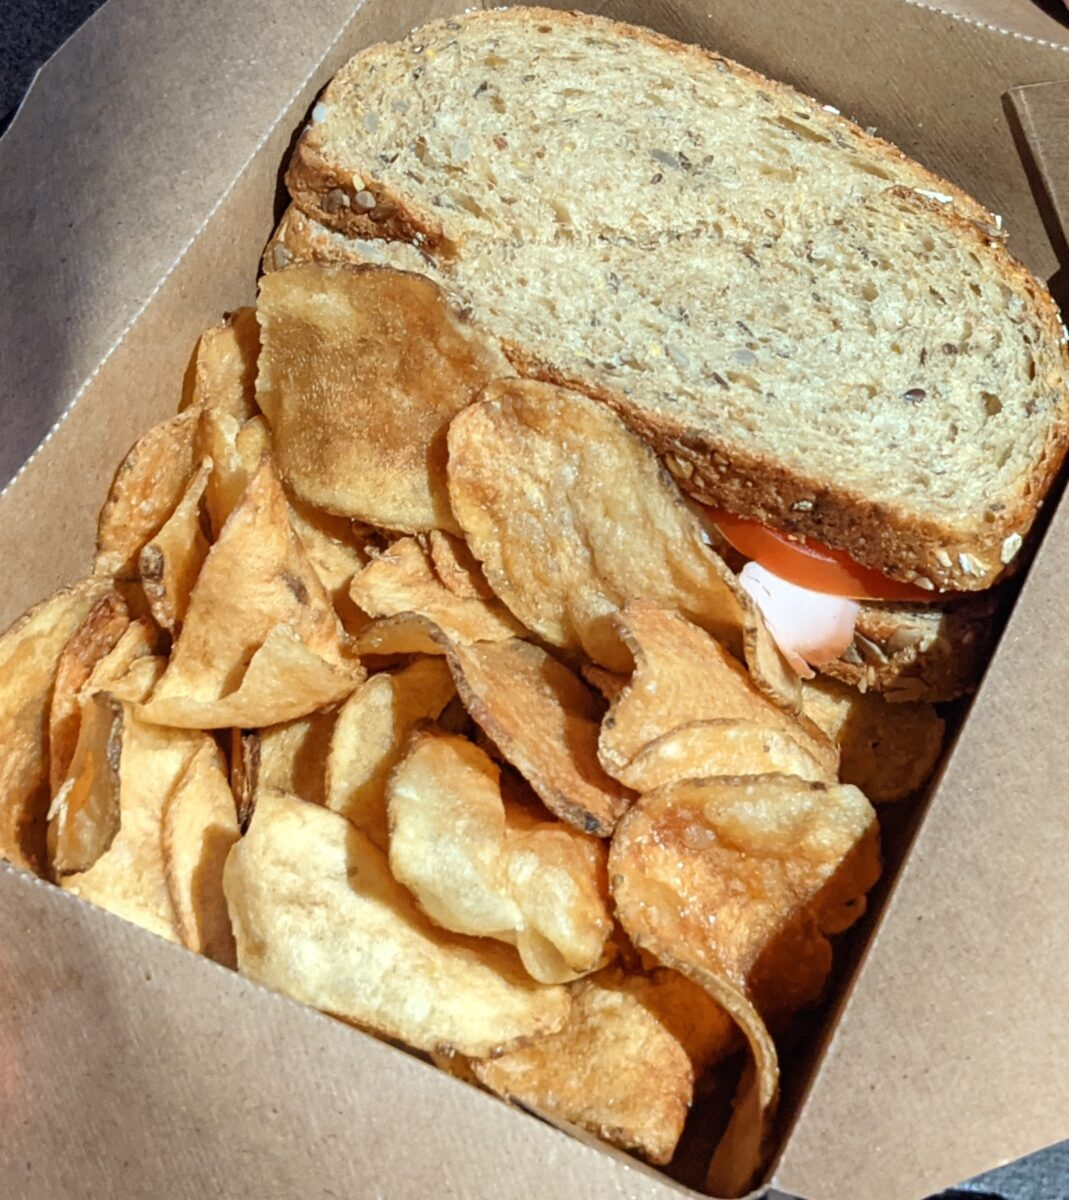 Geyser Point Bar & Grill at Disney's Wilderness Lodge in Orlando has great food like turkey sandwiches and chips